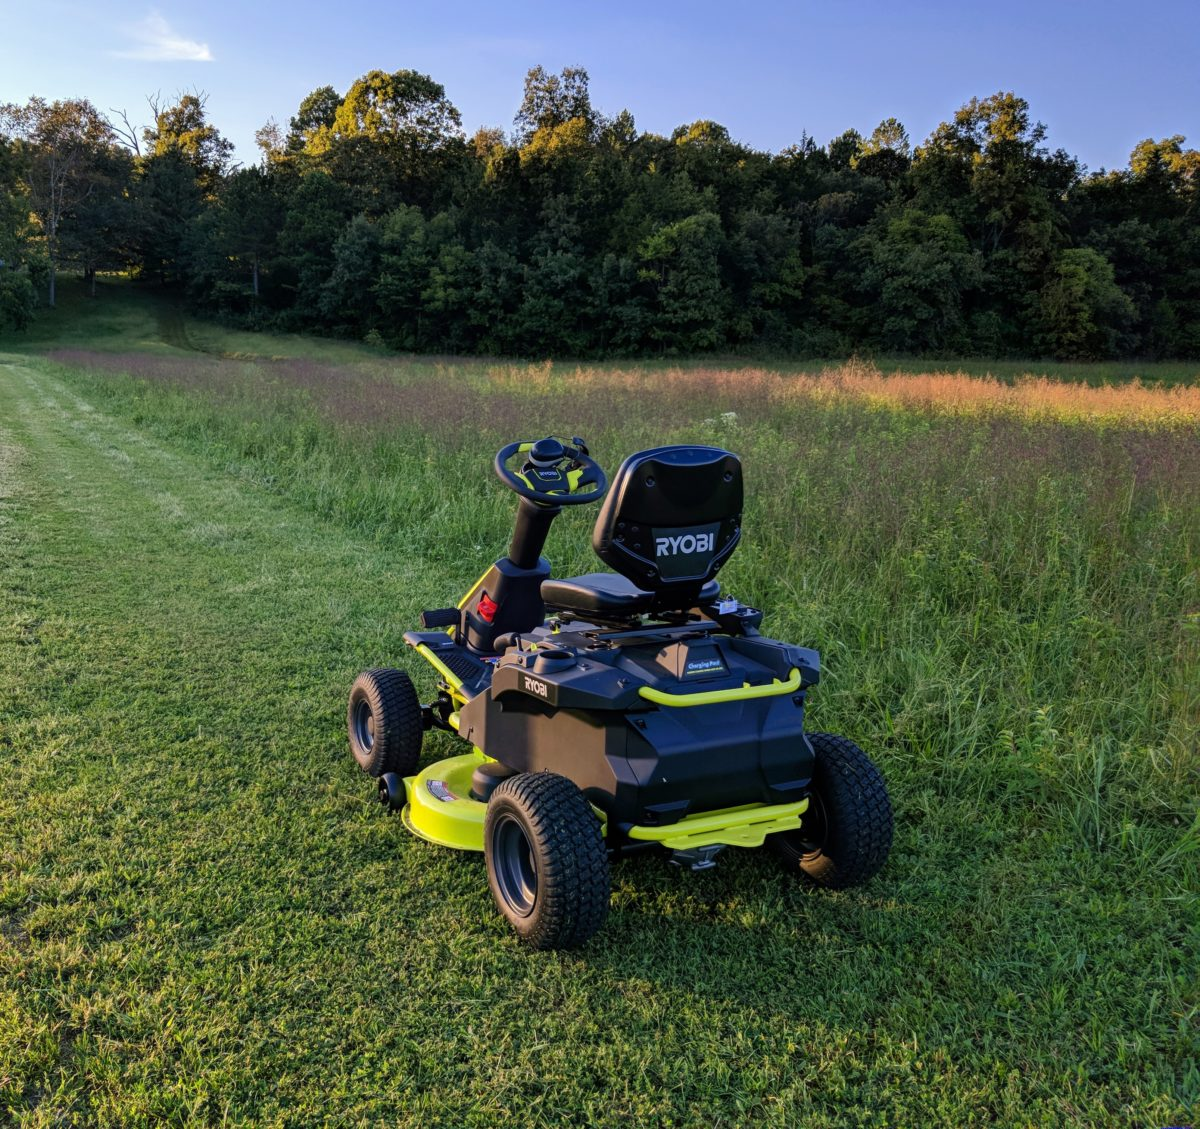 Ryobi Electric Riding Lawn Mower Reviews